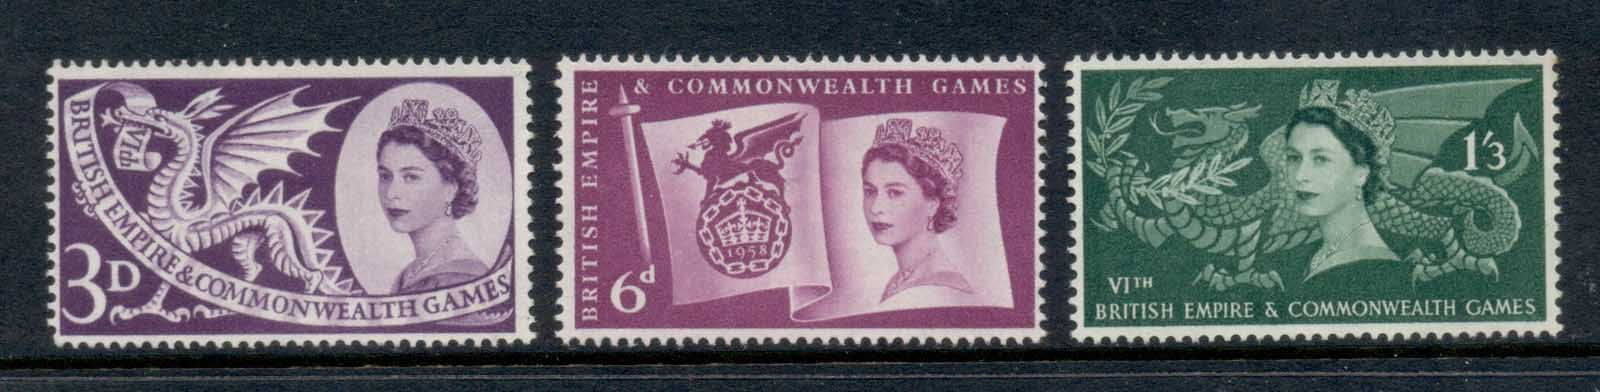 GB 1958 British Empire & Commonwealth Games MLH